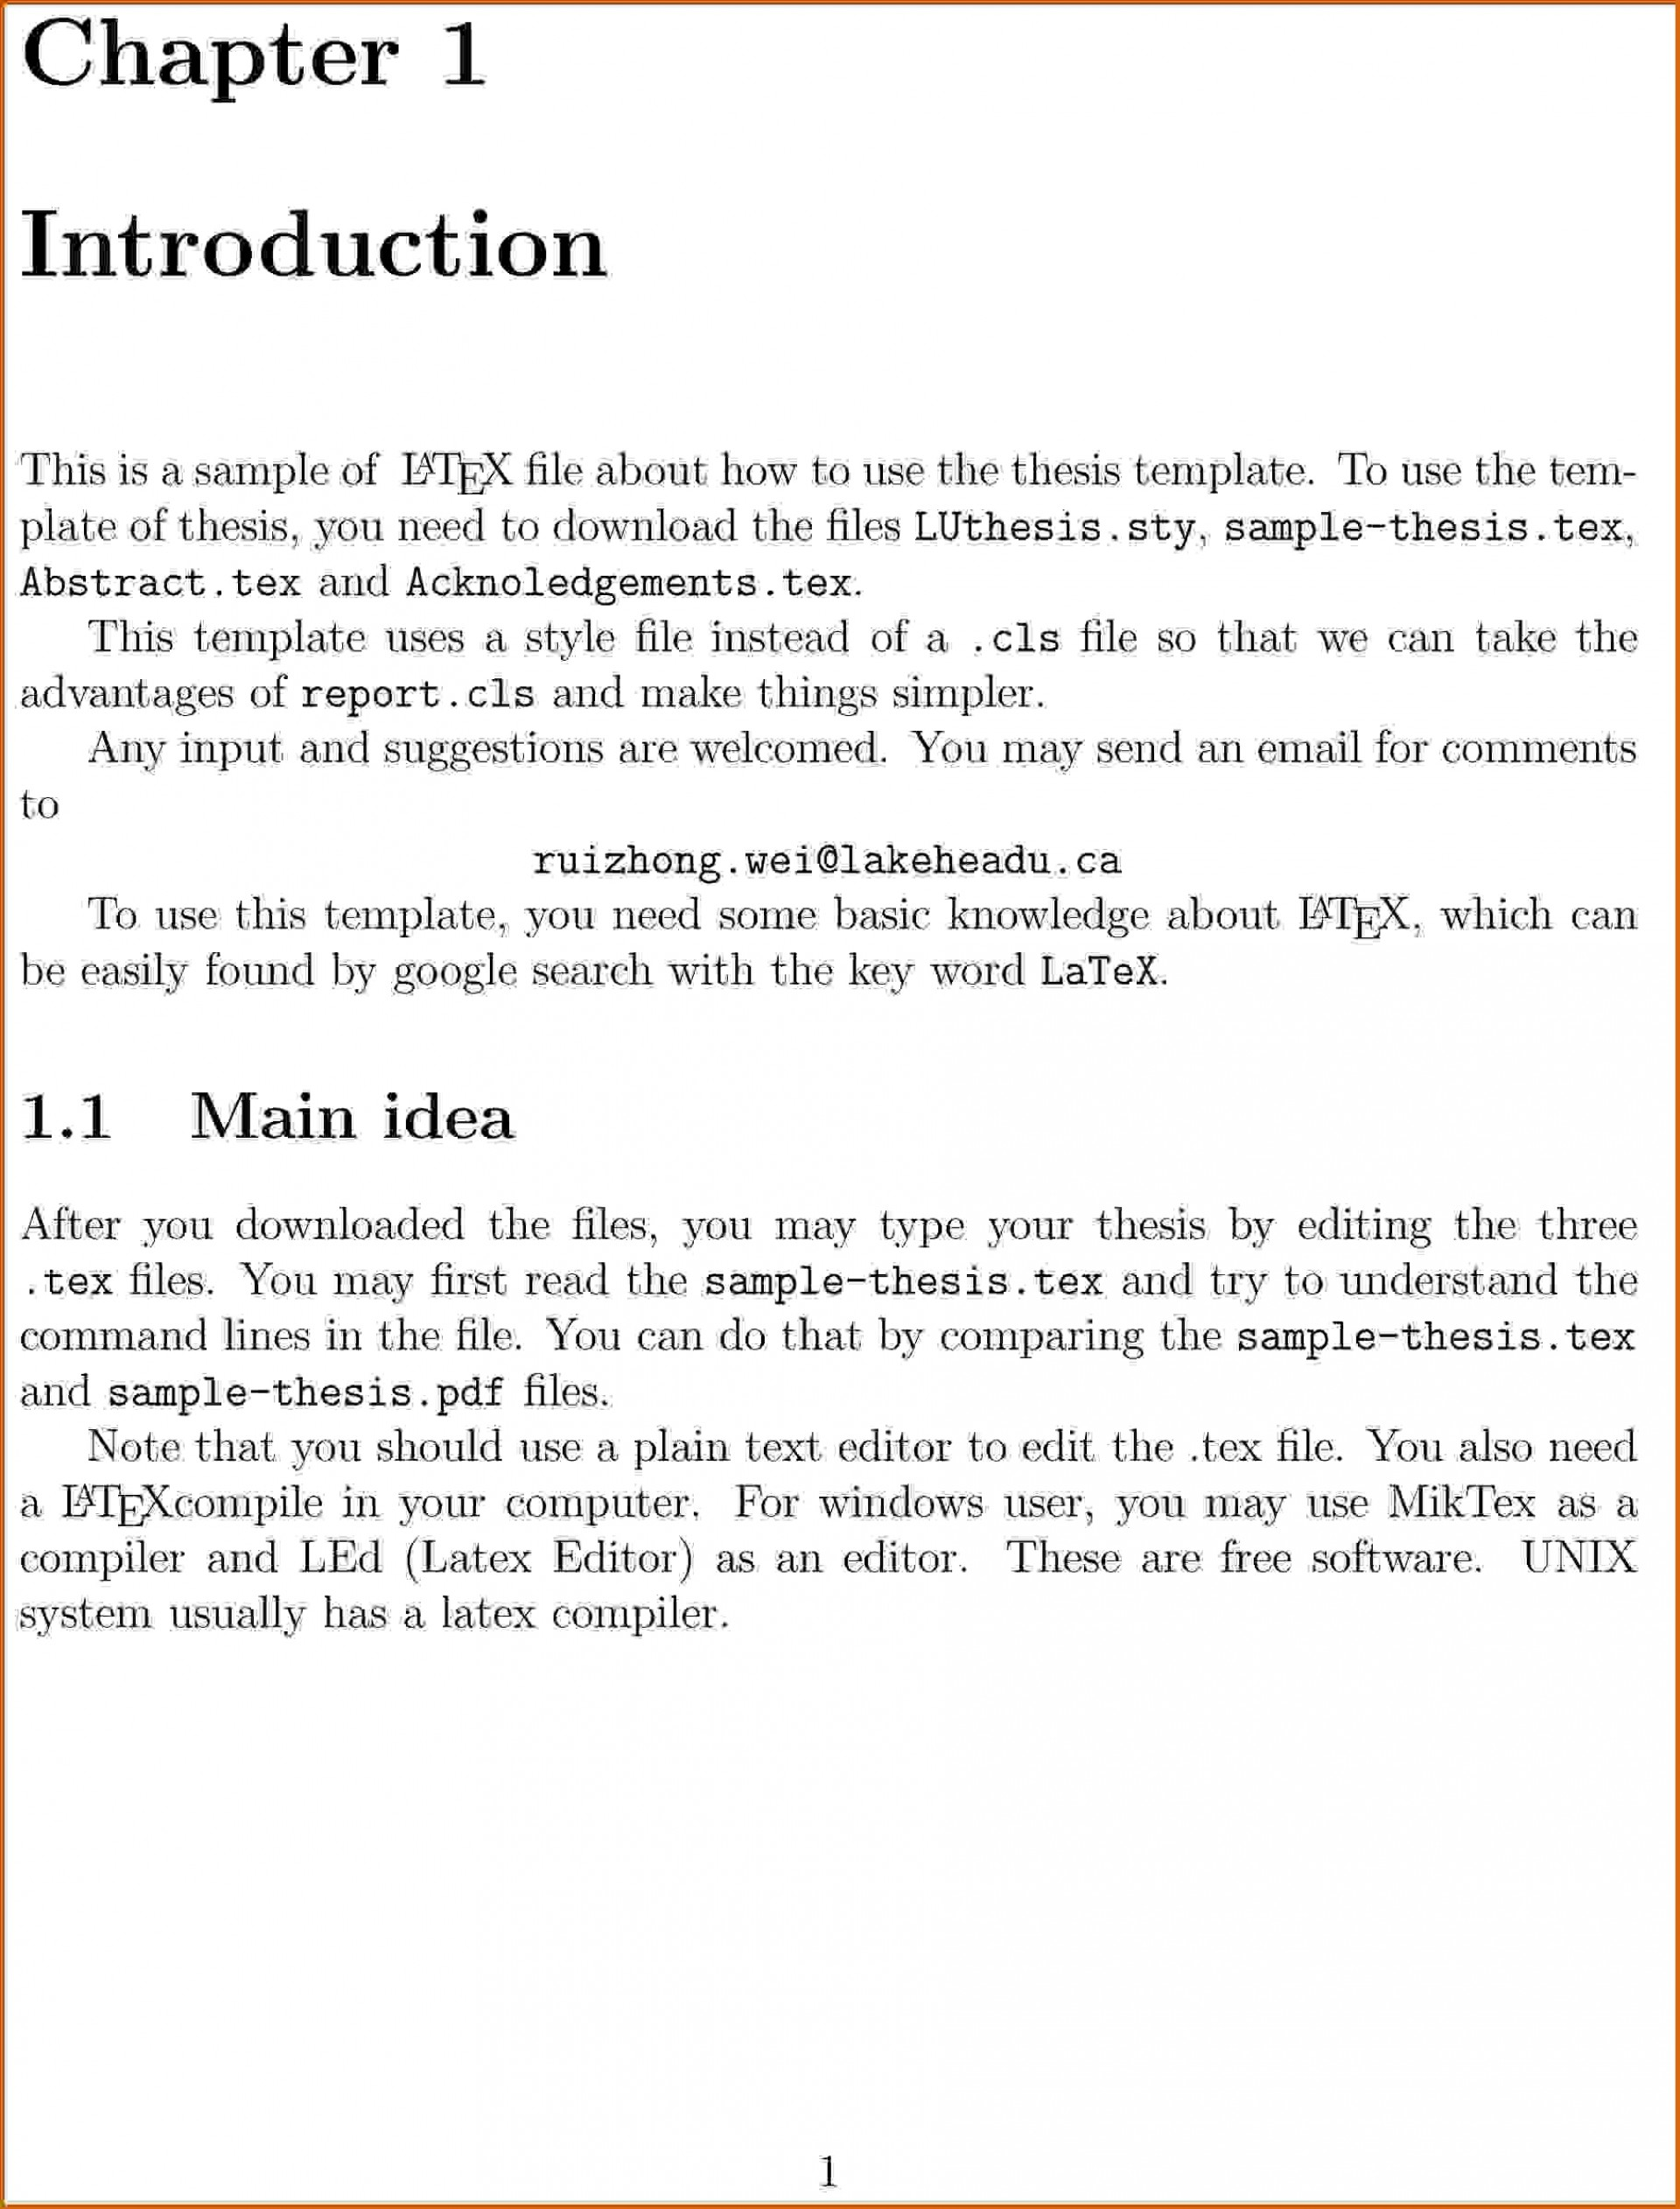 003 Essay Example Good Intros For Essays Examples Ofs Selo Yogawithjo Co Unusual Best Introductions Narrative 1920